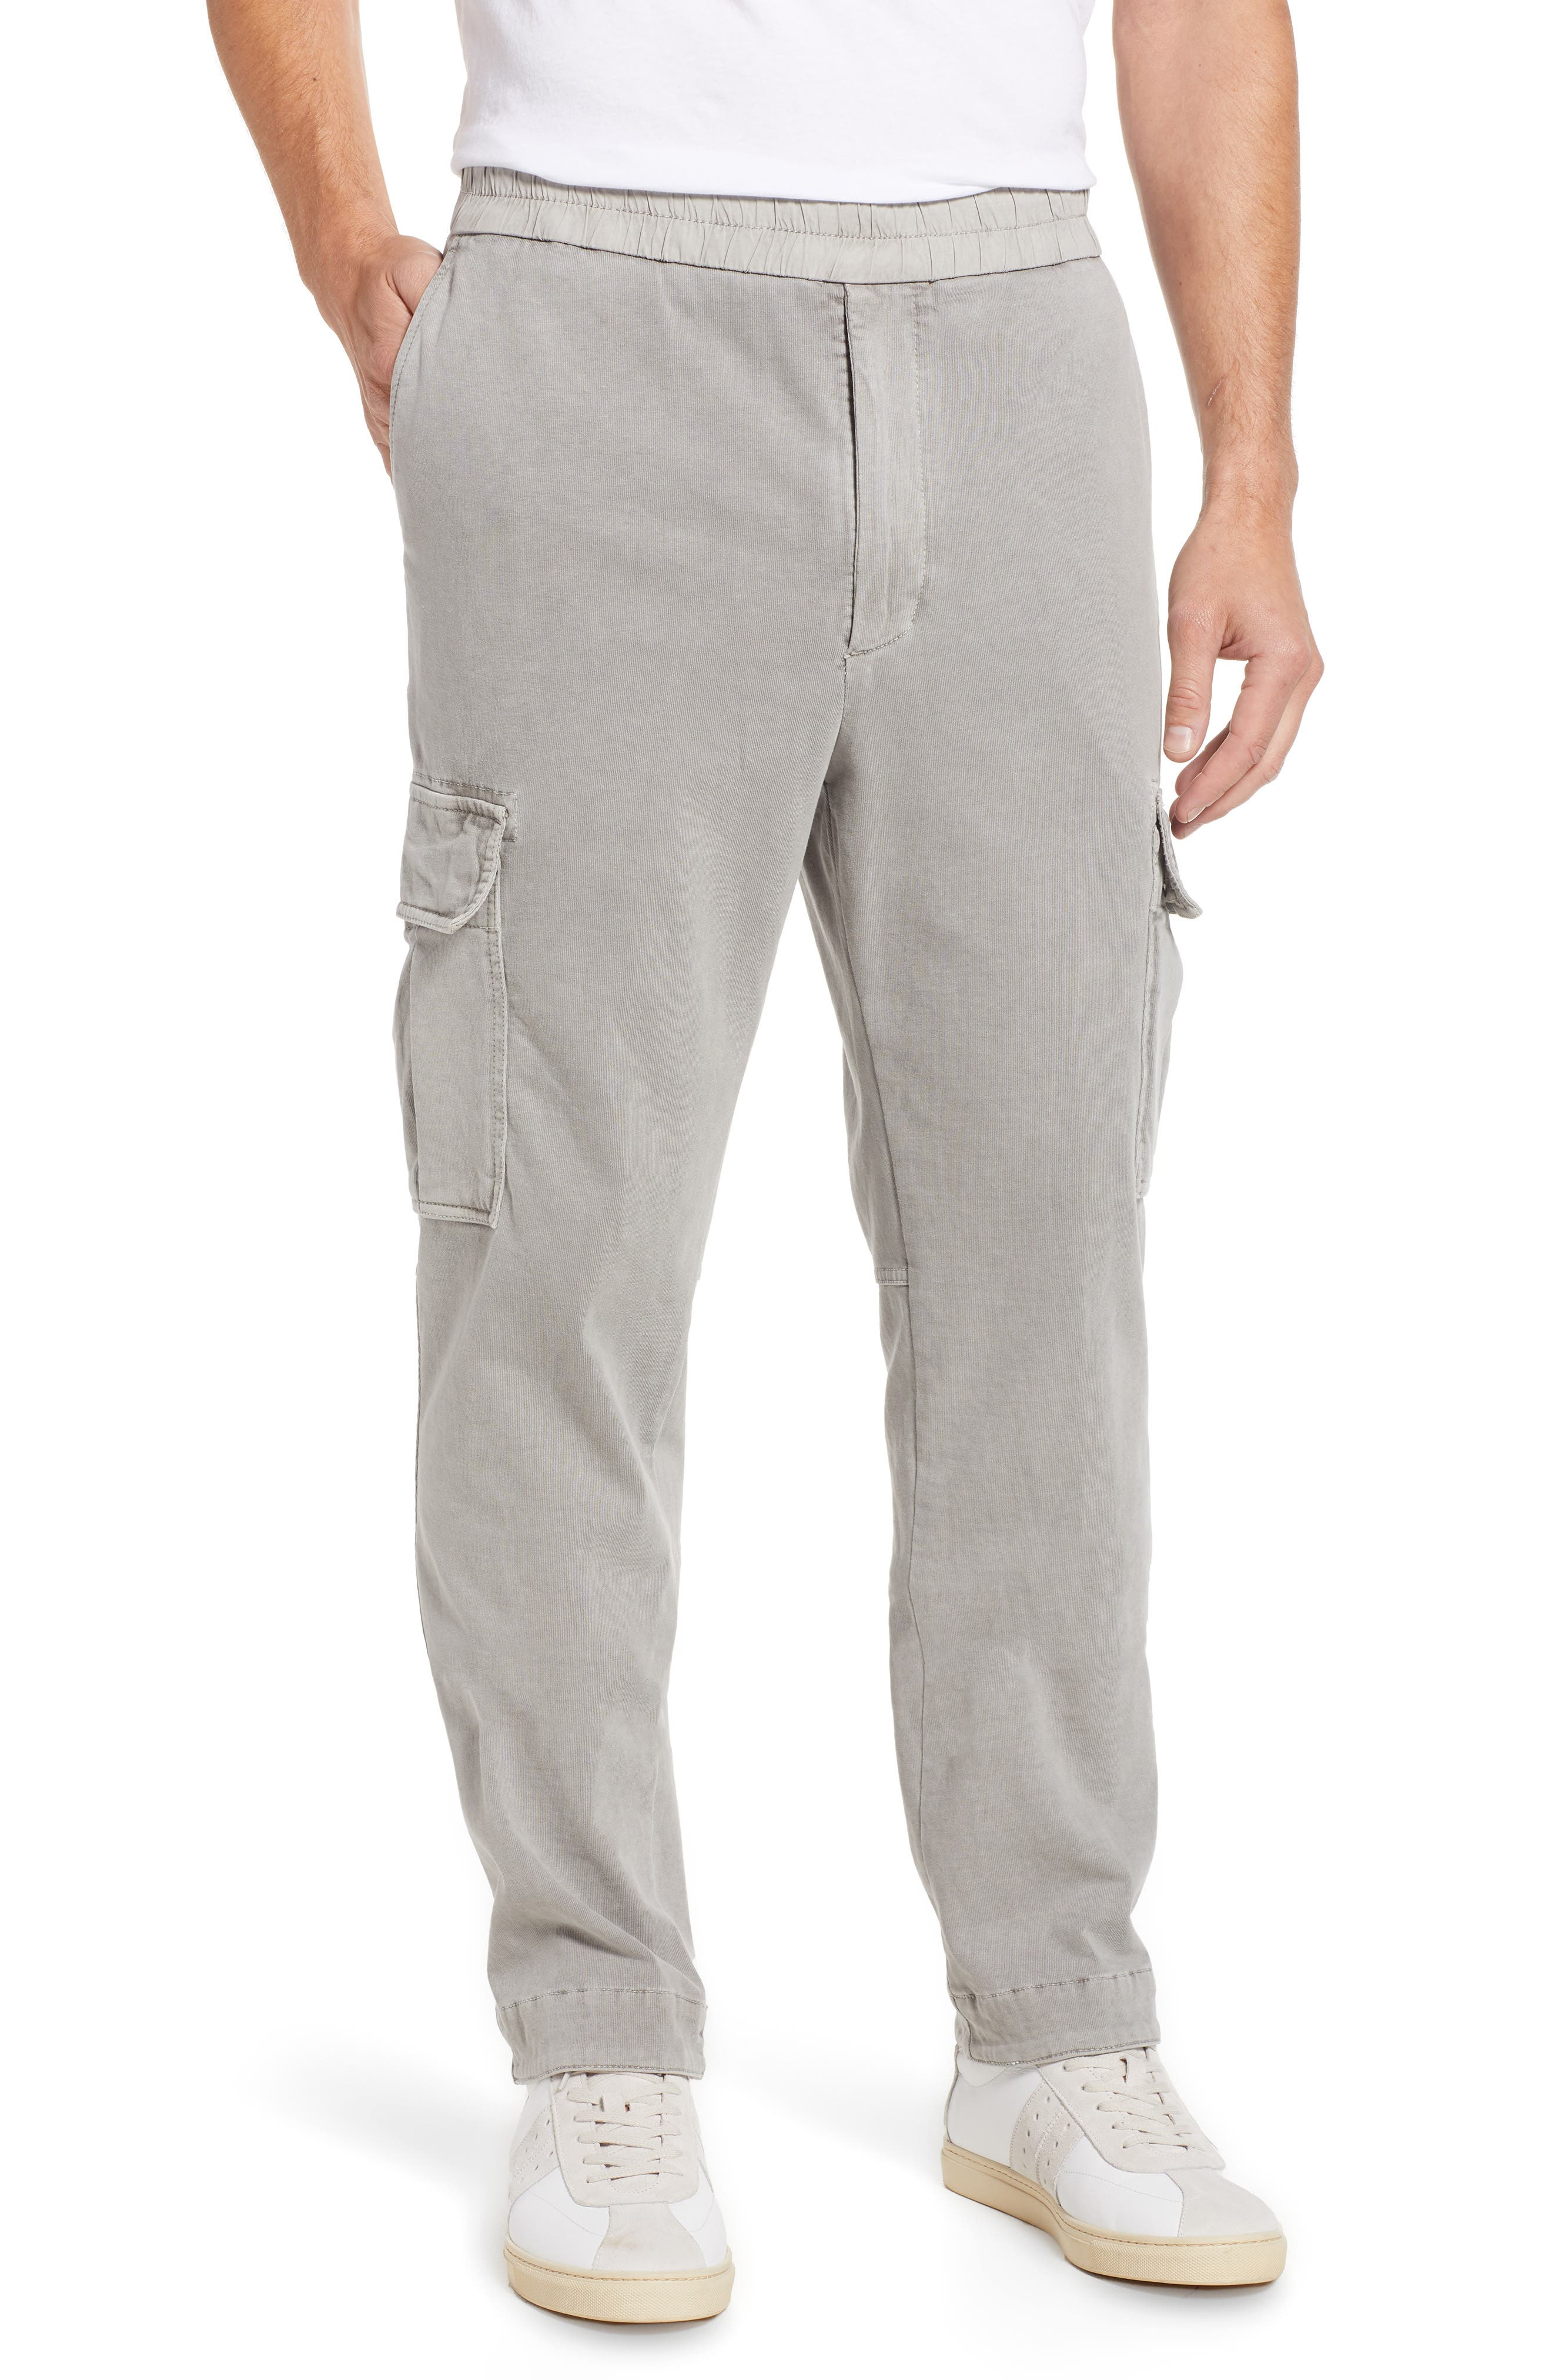 Cotton Jersey Relaxed Fit Cargo Pants,                             Main thumbnail 1, color,                             Paver Pigment